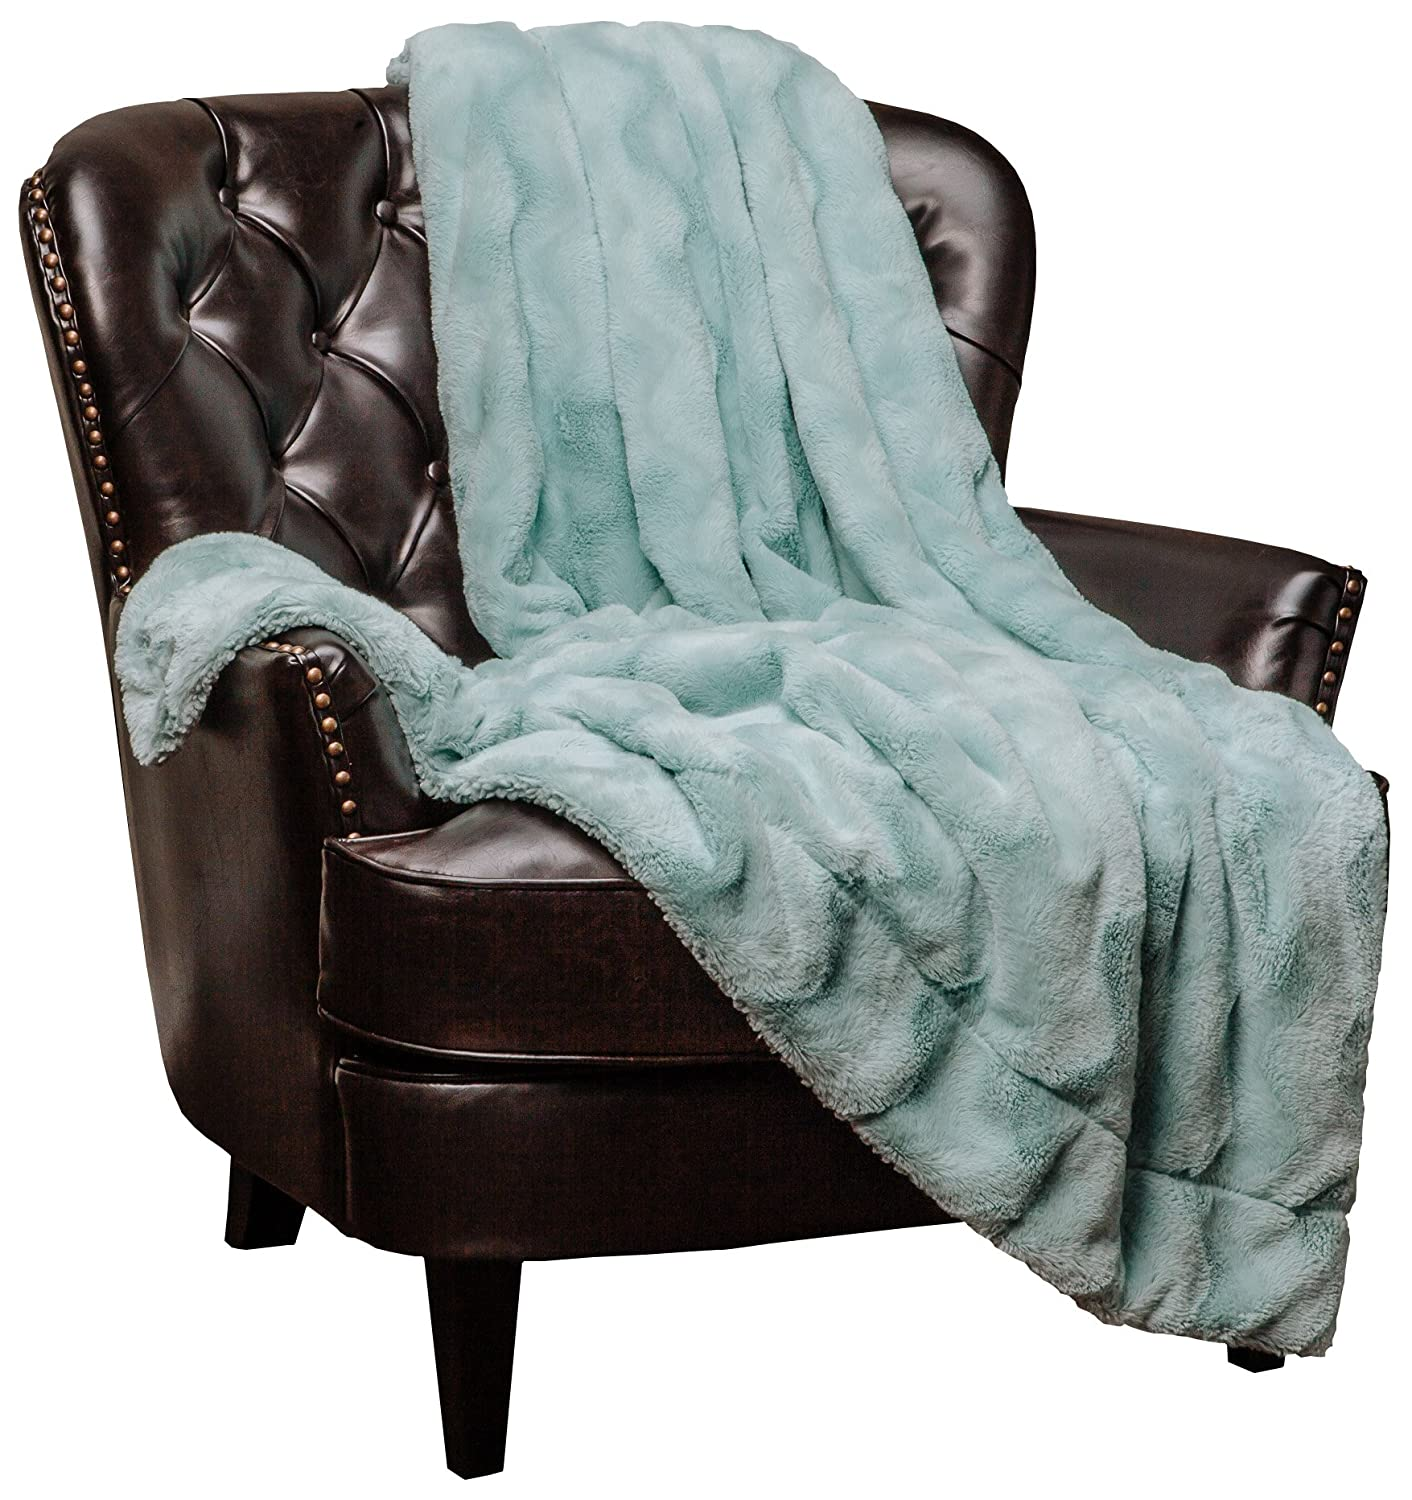 """Chanasya Fur Throw Blanket for Bed Couch Chair Daybed - Soft Wave Embossed Pattern - Warm Elegant Cozy Fuzzy Fluffy Faux Fur Plush Suitable for Fall Winter Summer Spring (50"""" x 65"""") - Aqua Blanket"""